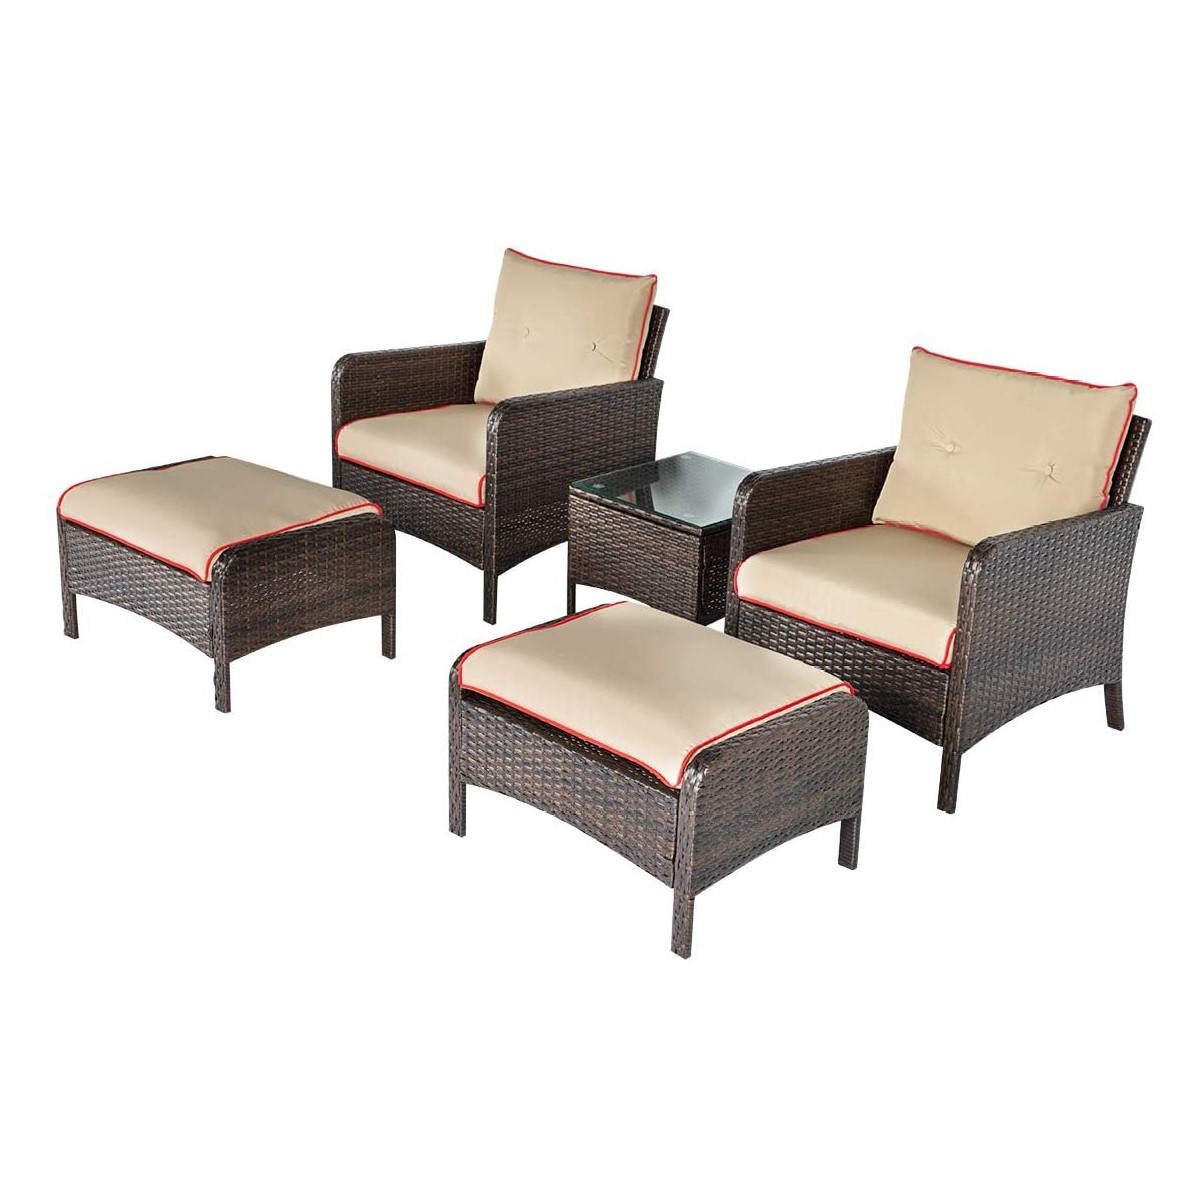 patio furniture 5 piece wicker outdoor conversation set outdoor wicker rattan furniture garden furniture sofa set with ottoman buy garden furniture set conversation 5 piece rattan sofa seating group with